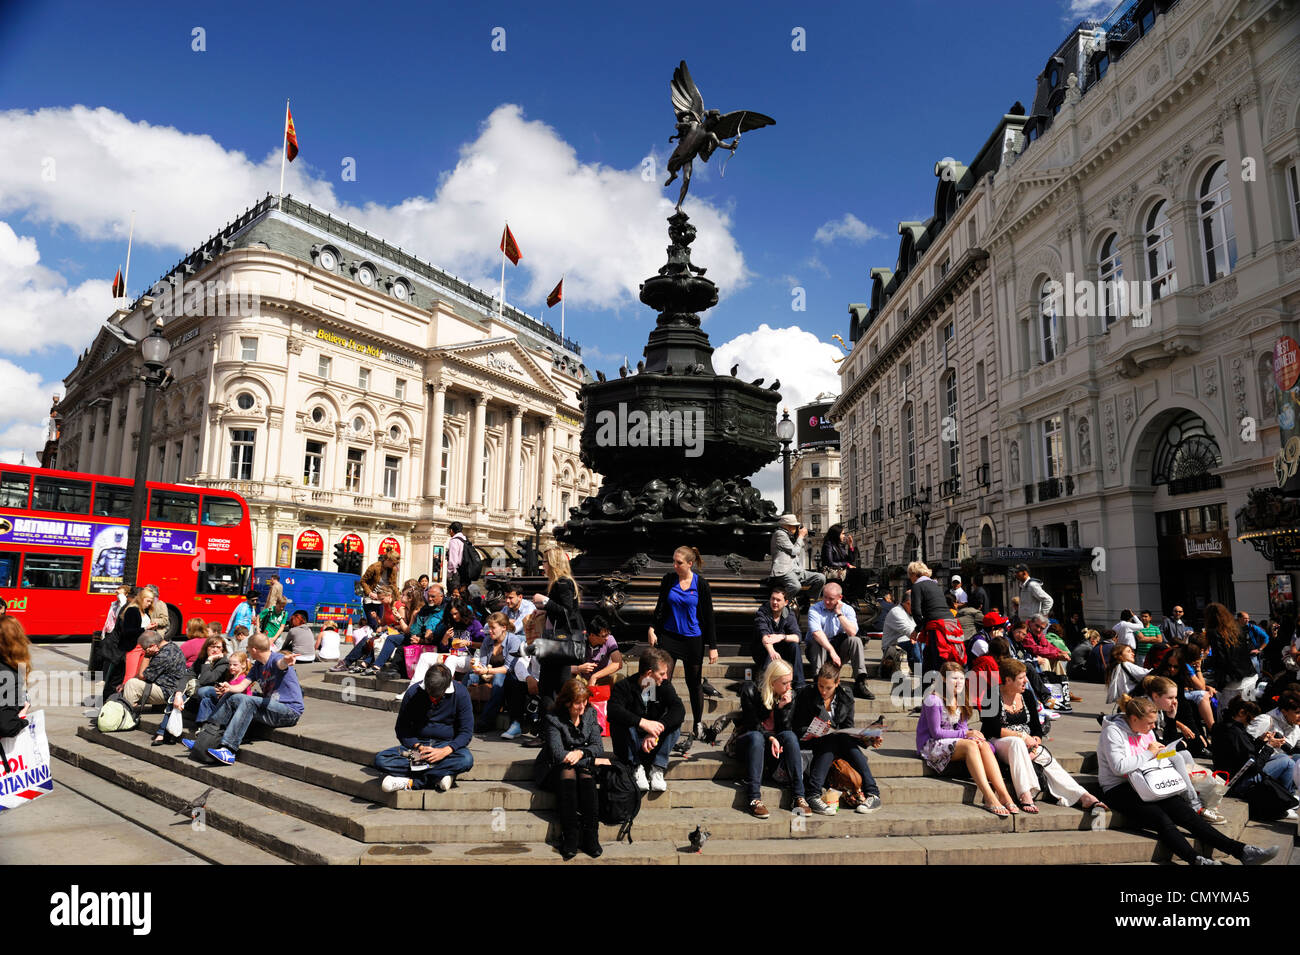 United Kingdom, London, Piccadilly Circus, crowd sitting at the foot of the statue of Eros - Stock Image